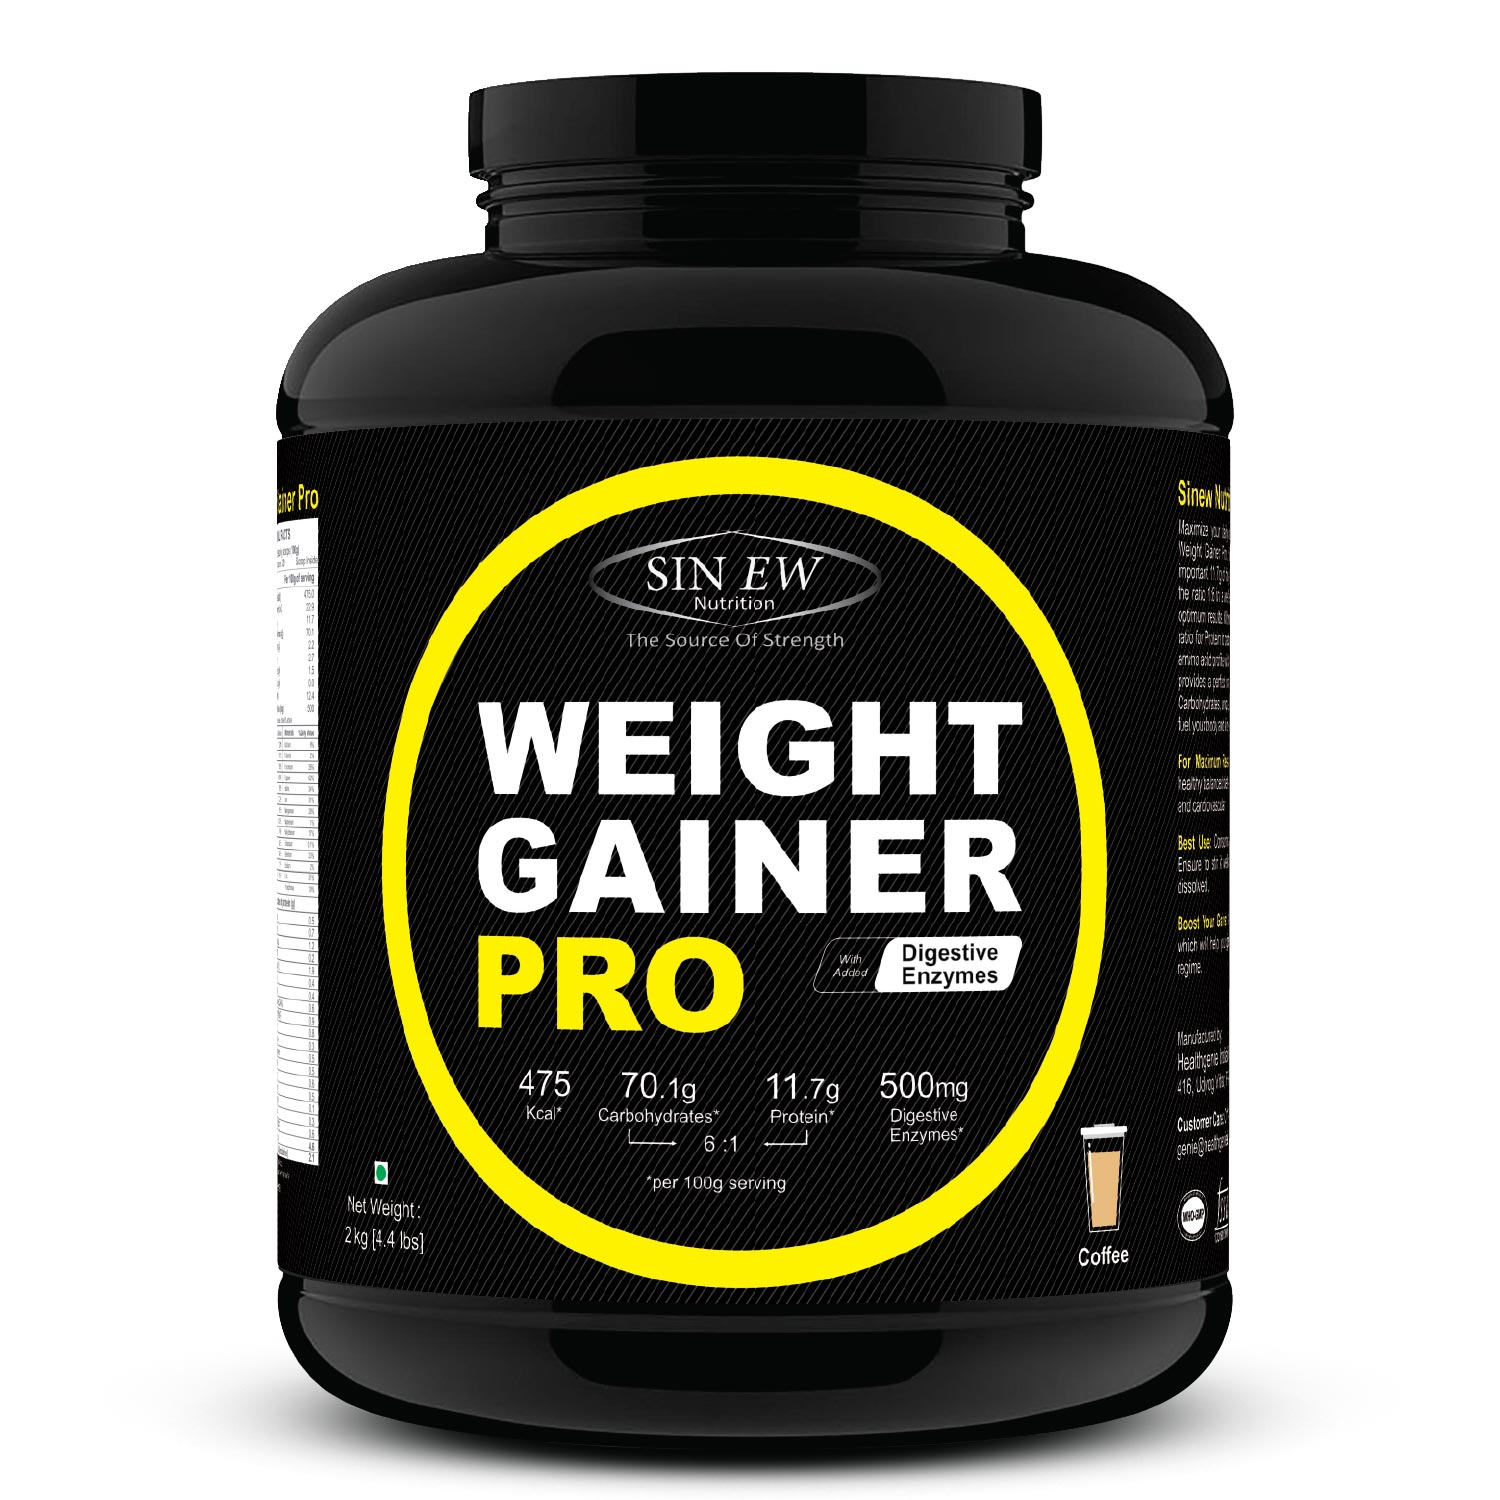 Weight Gainer Pro (coffee) 2 F